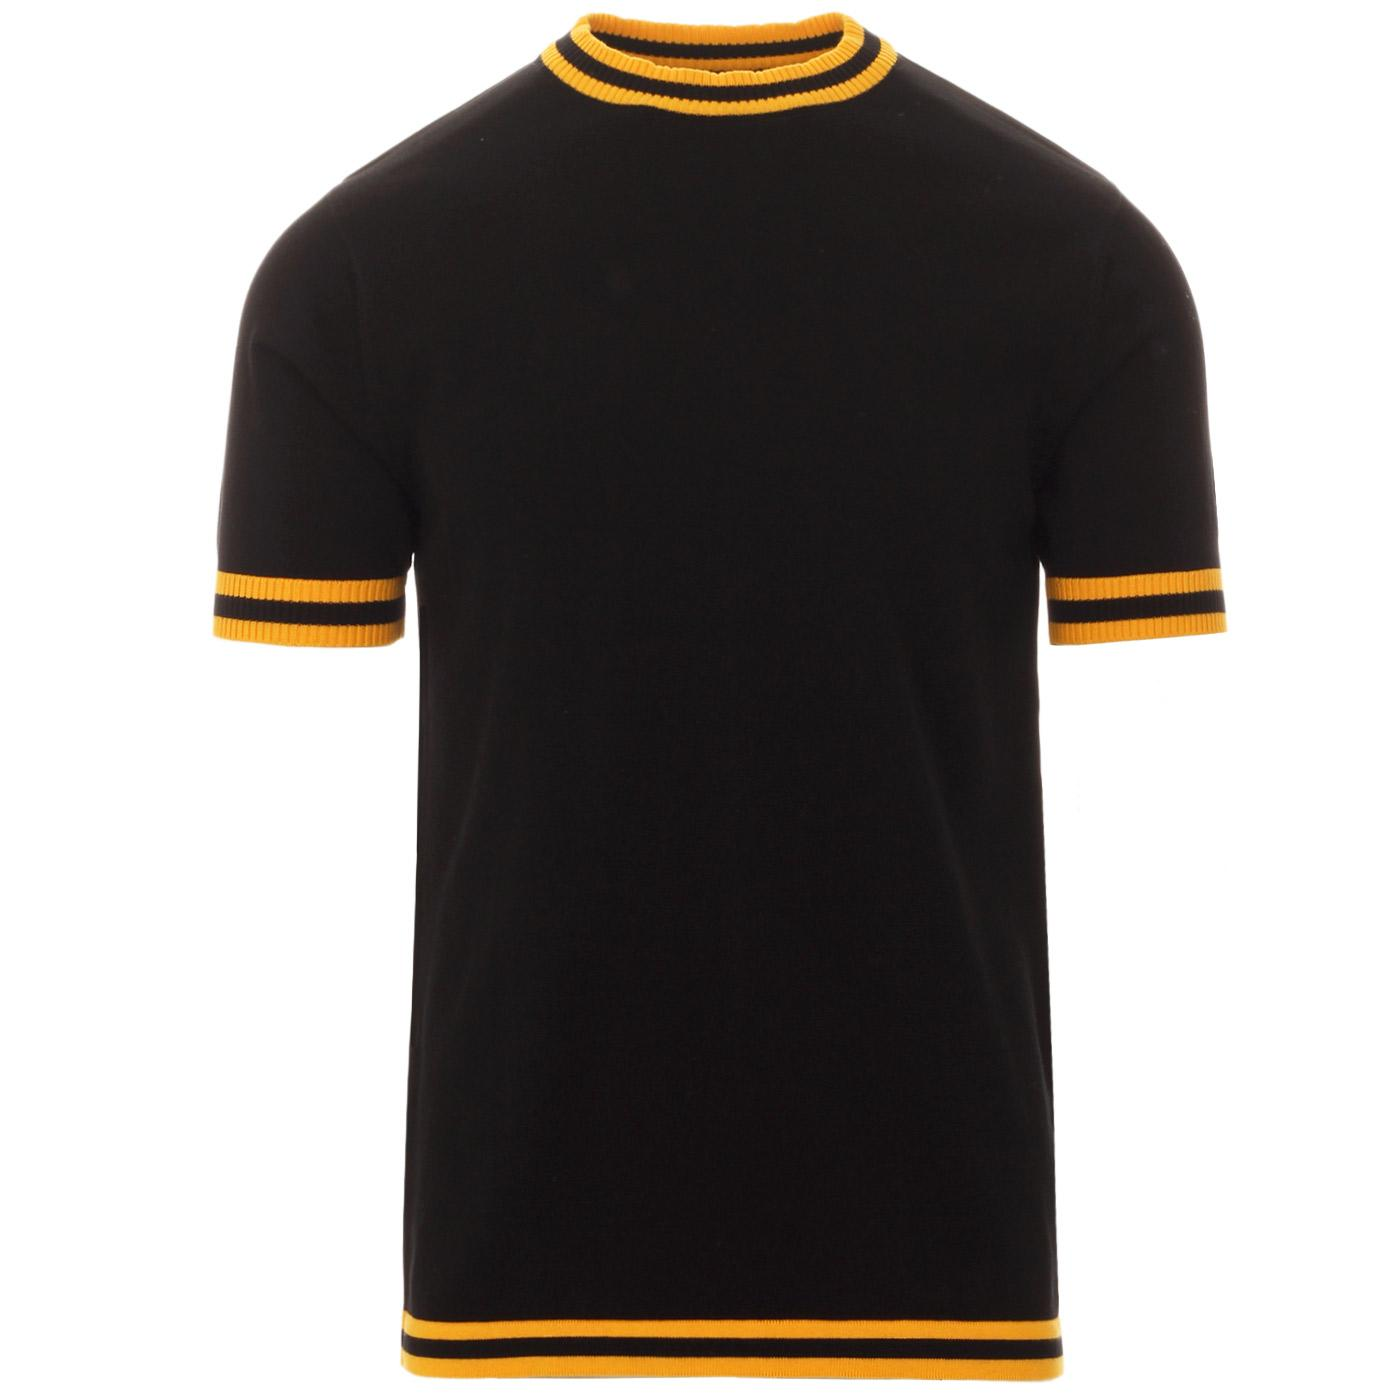 Moon MADCAP ENGLAND 60s Mod Tipped Knit Tee (B/Y)